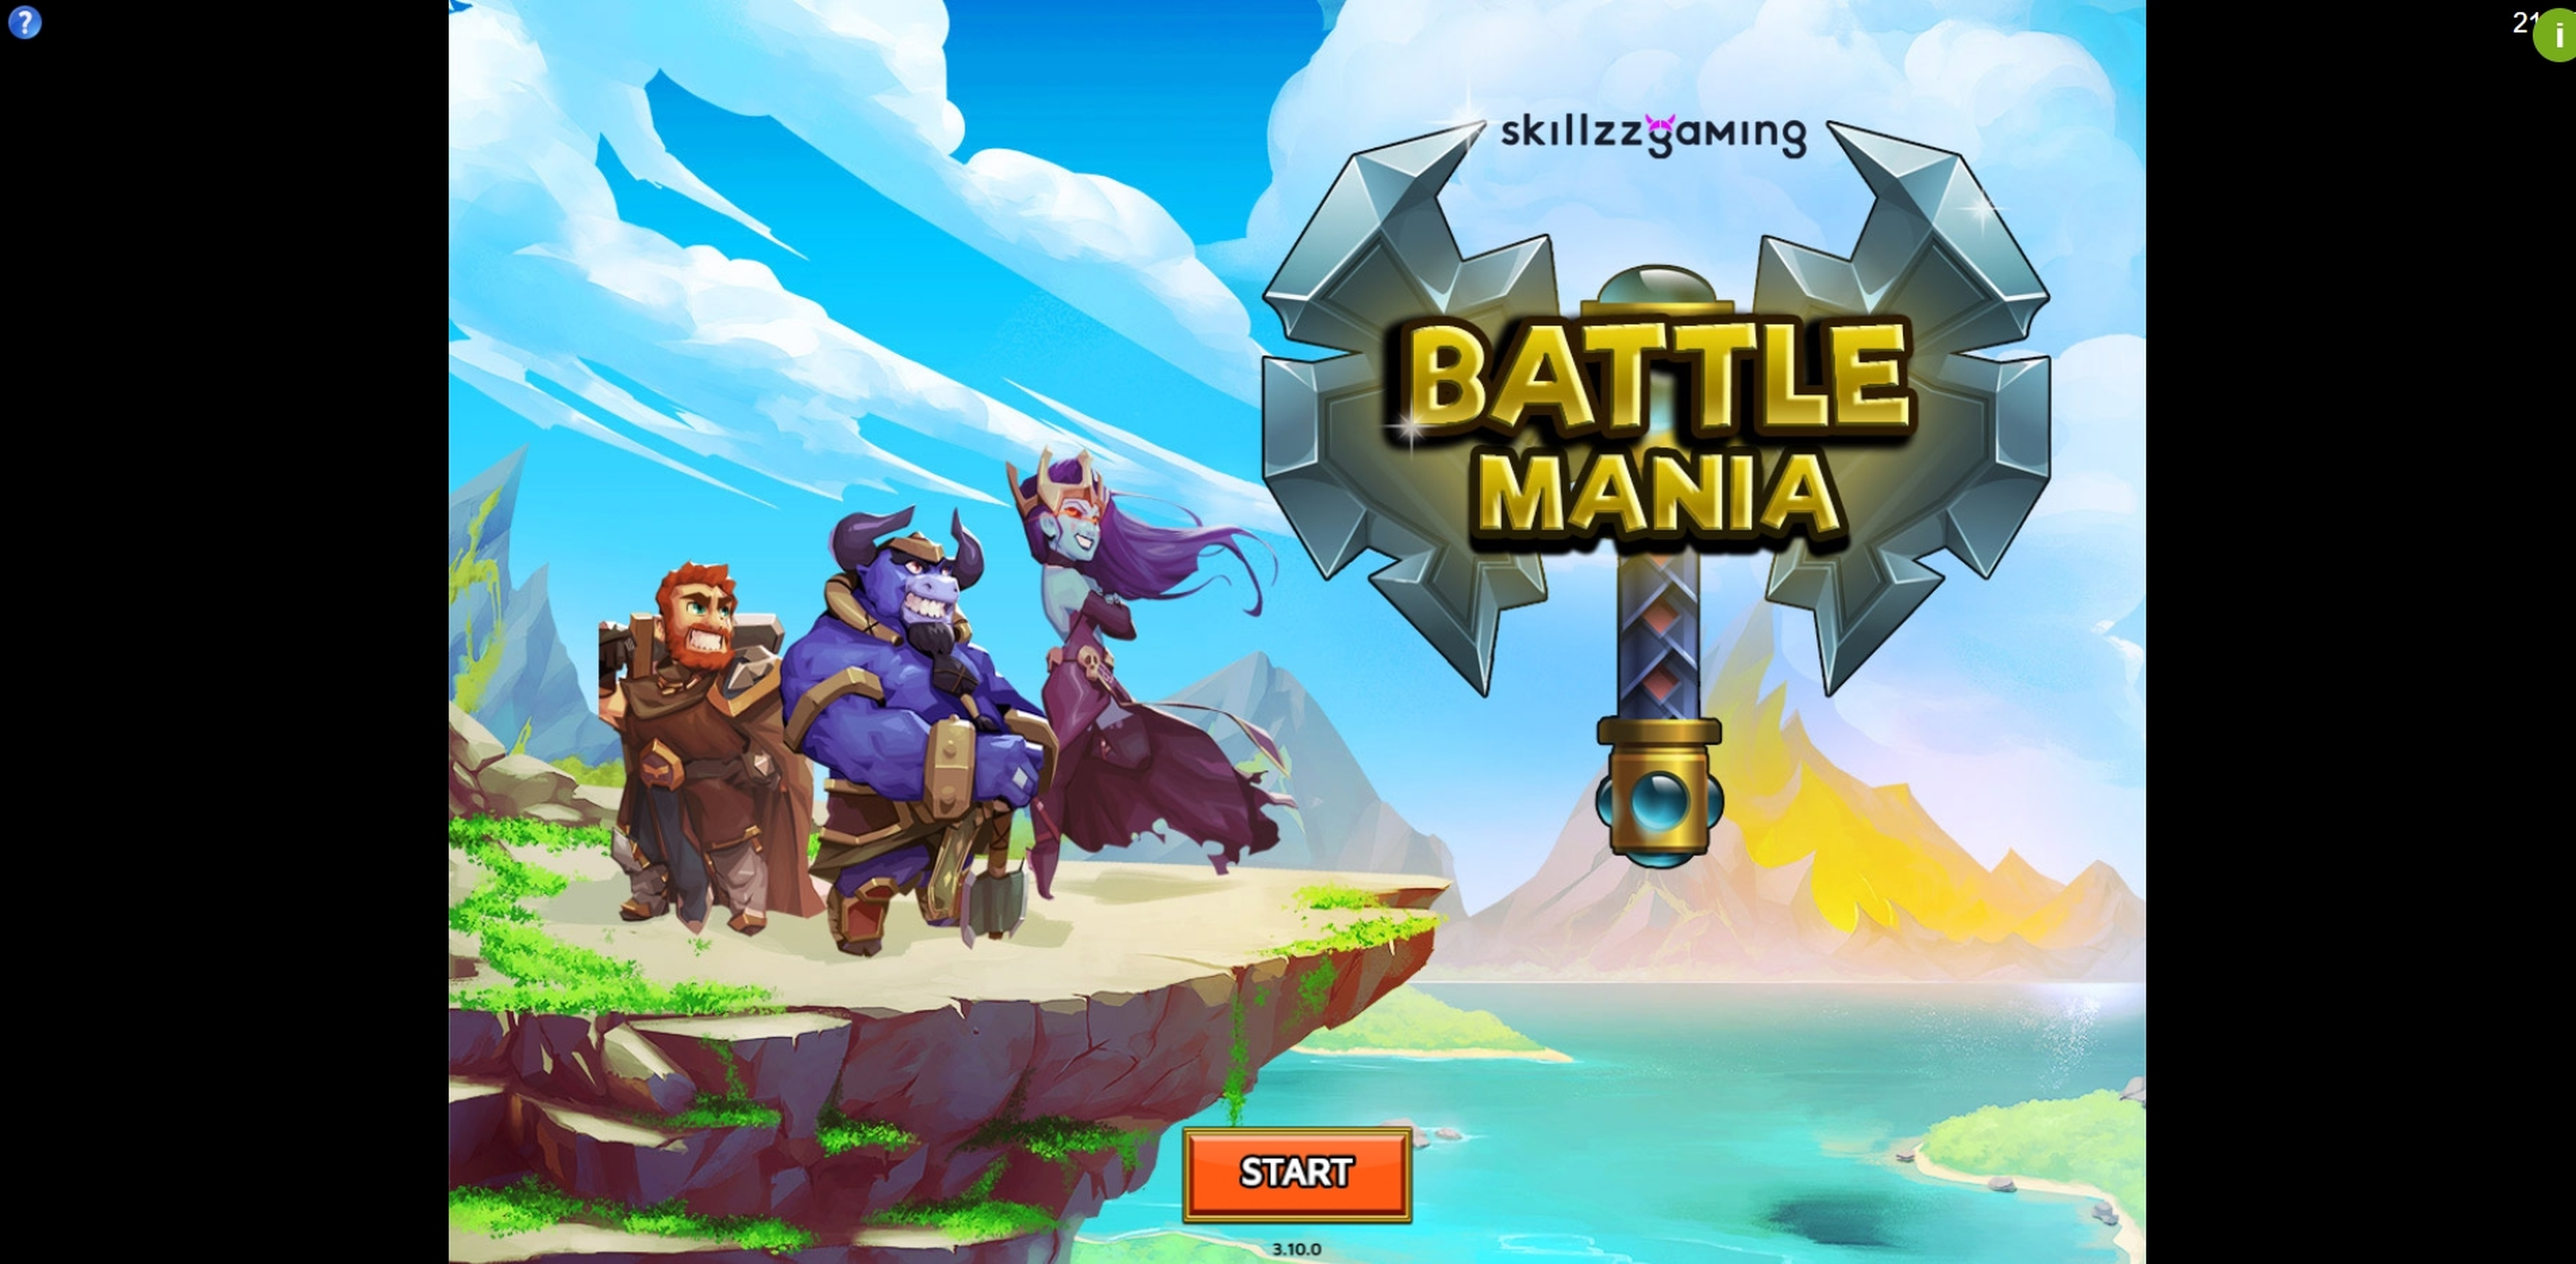 Play Battle Mania Free Casino Slot Game by Skillzzgaming